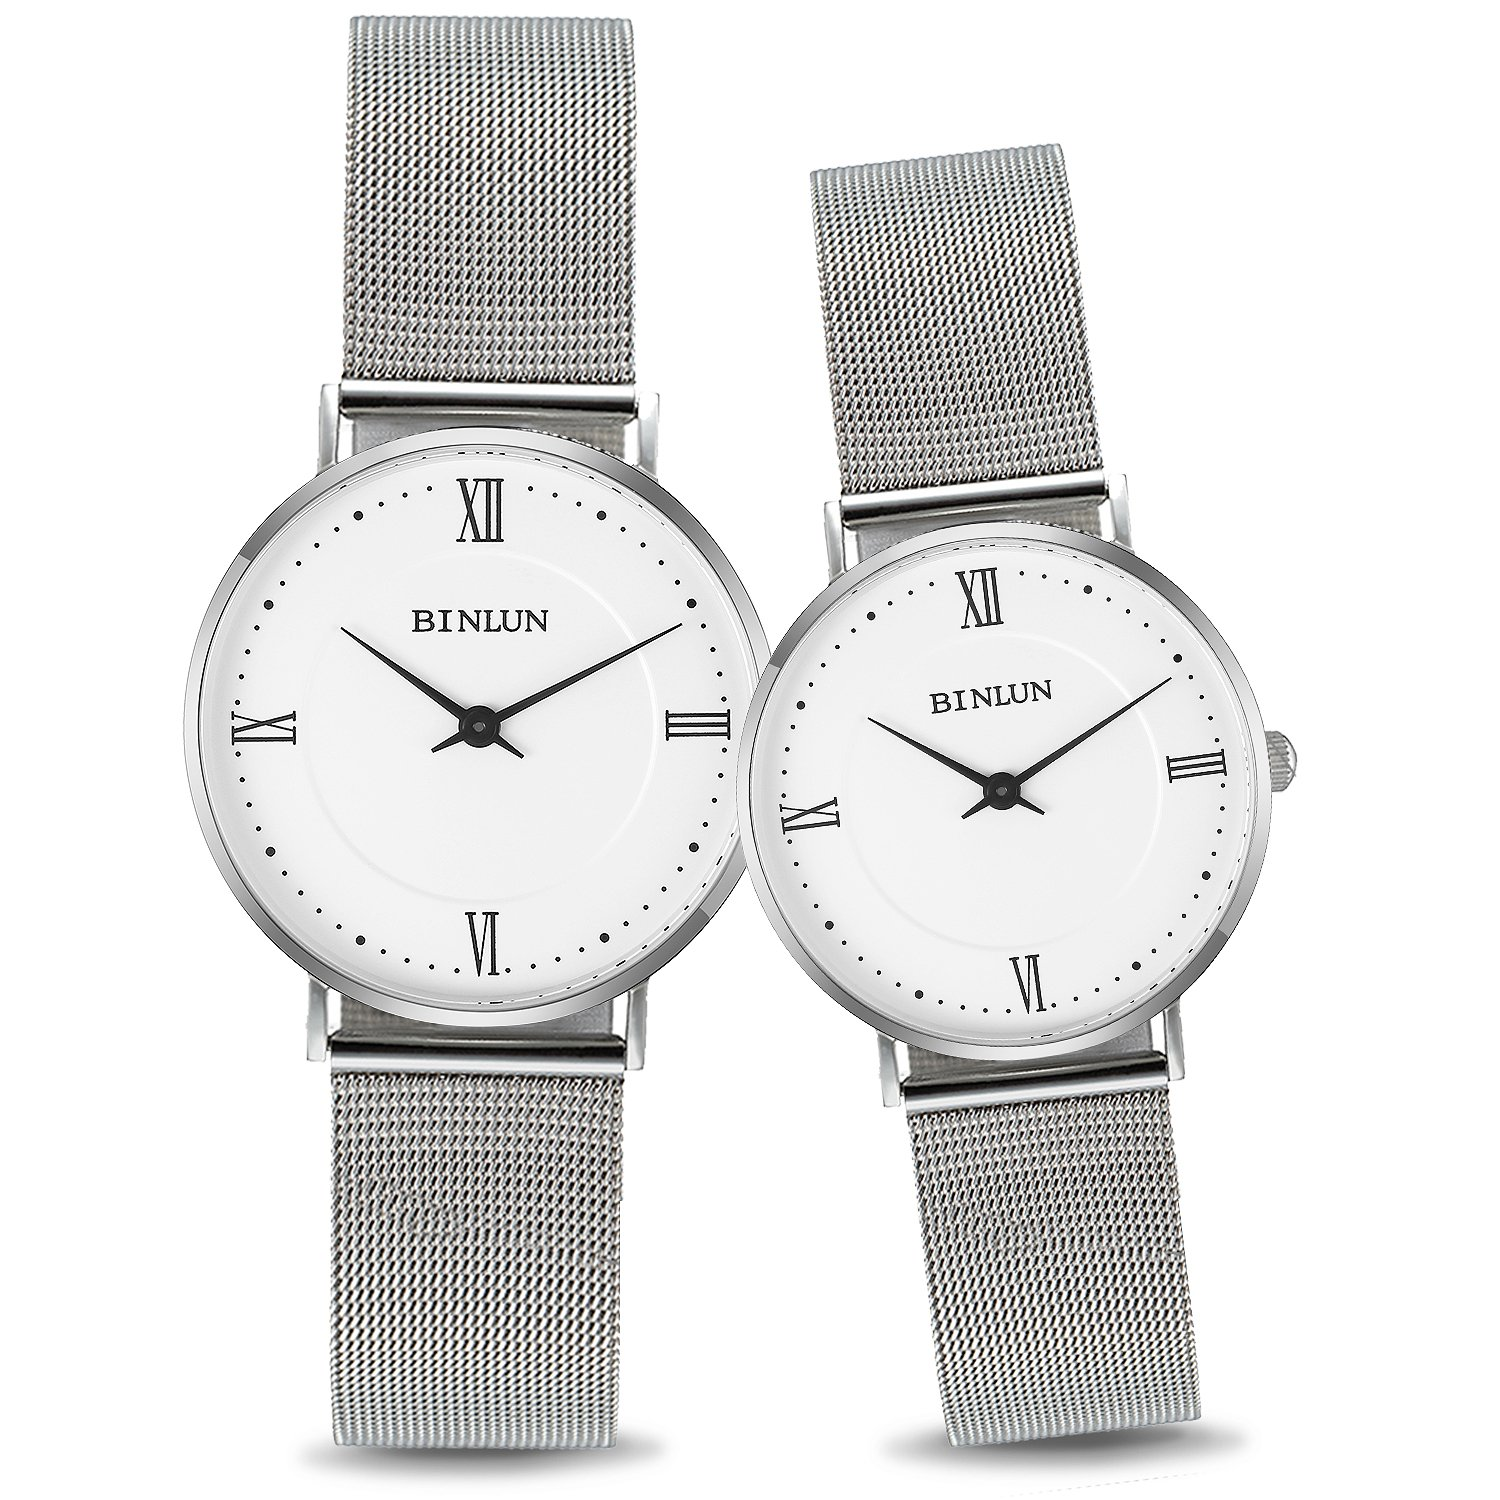 BINLUN His and Hers Quartz Watch Silver Stainless Steel Couple Waterproof Watches